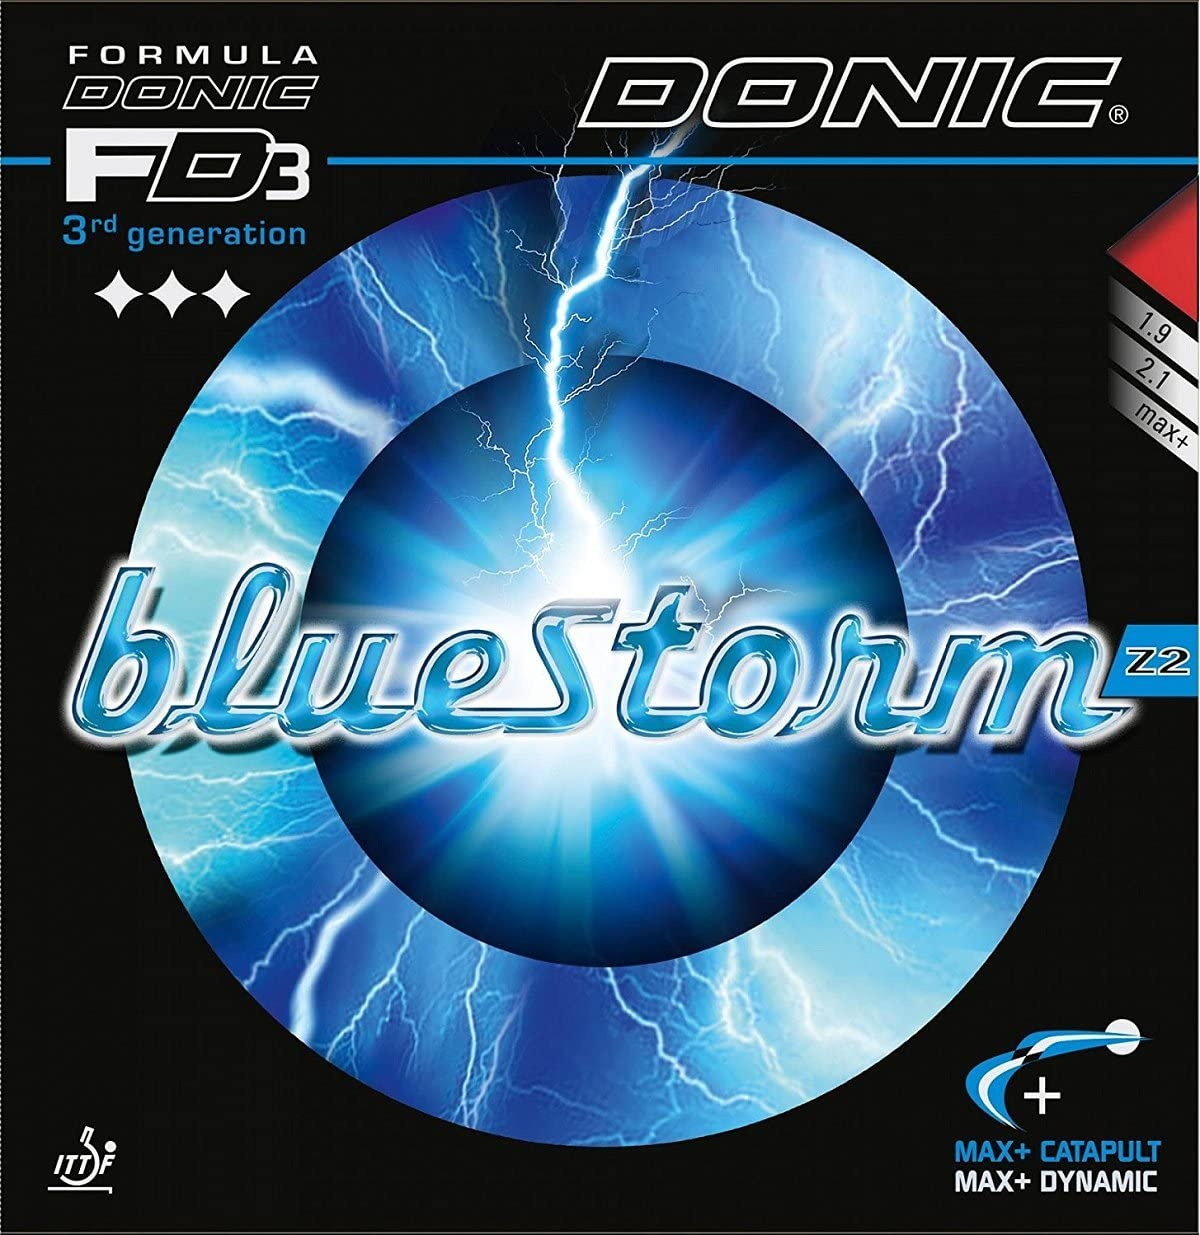 Donic bluestorm Z2, 2.1mm Red and Black, Table Tennis Rubbers (2Pieces)